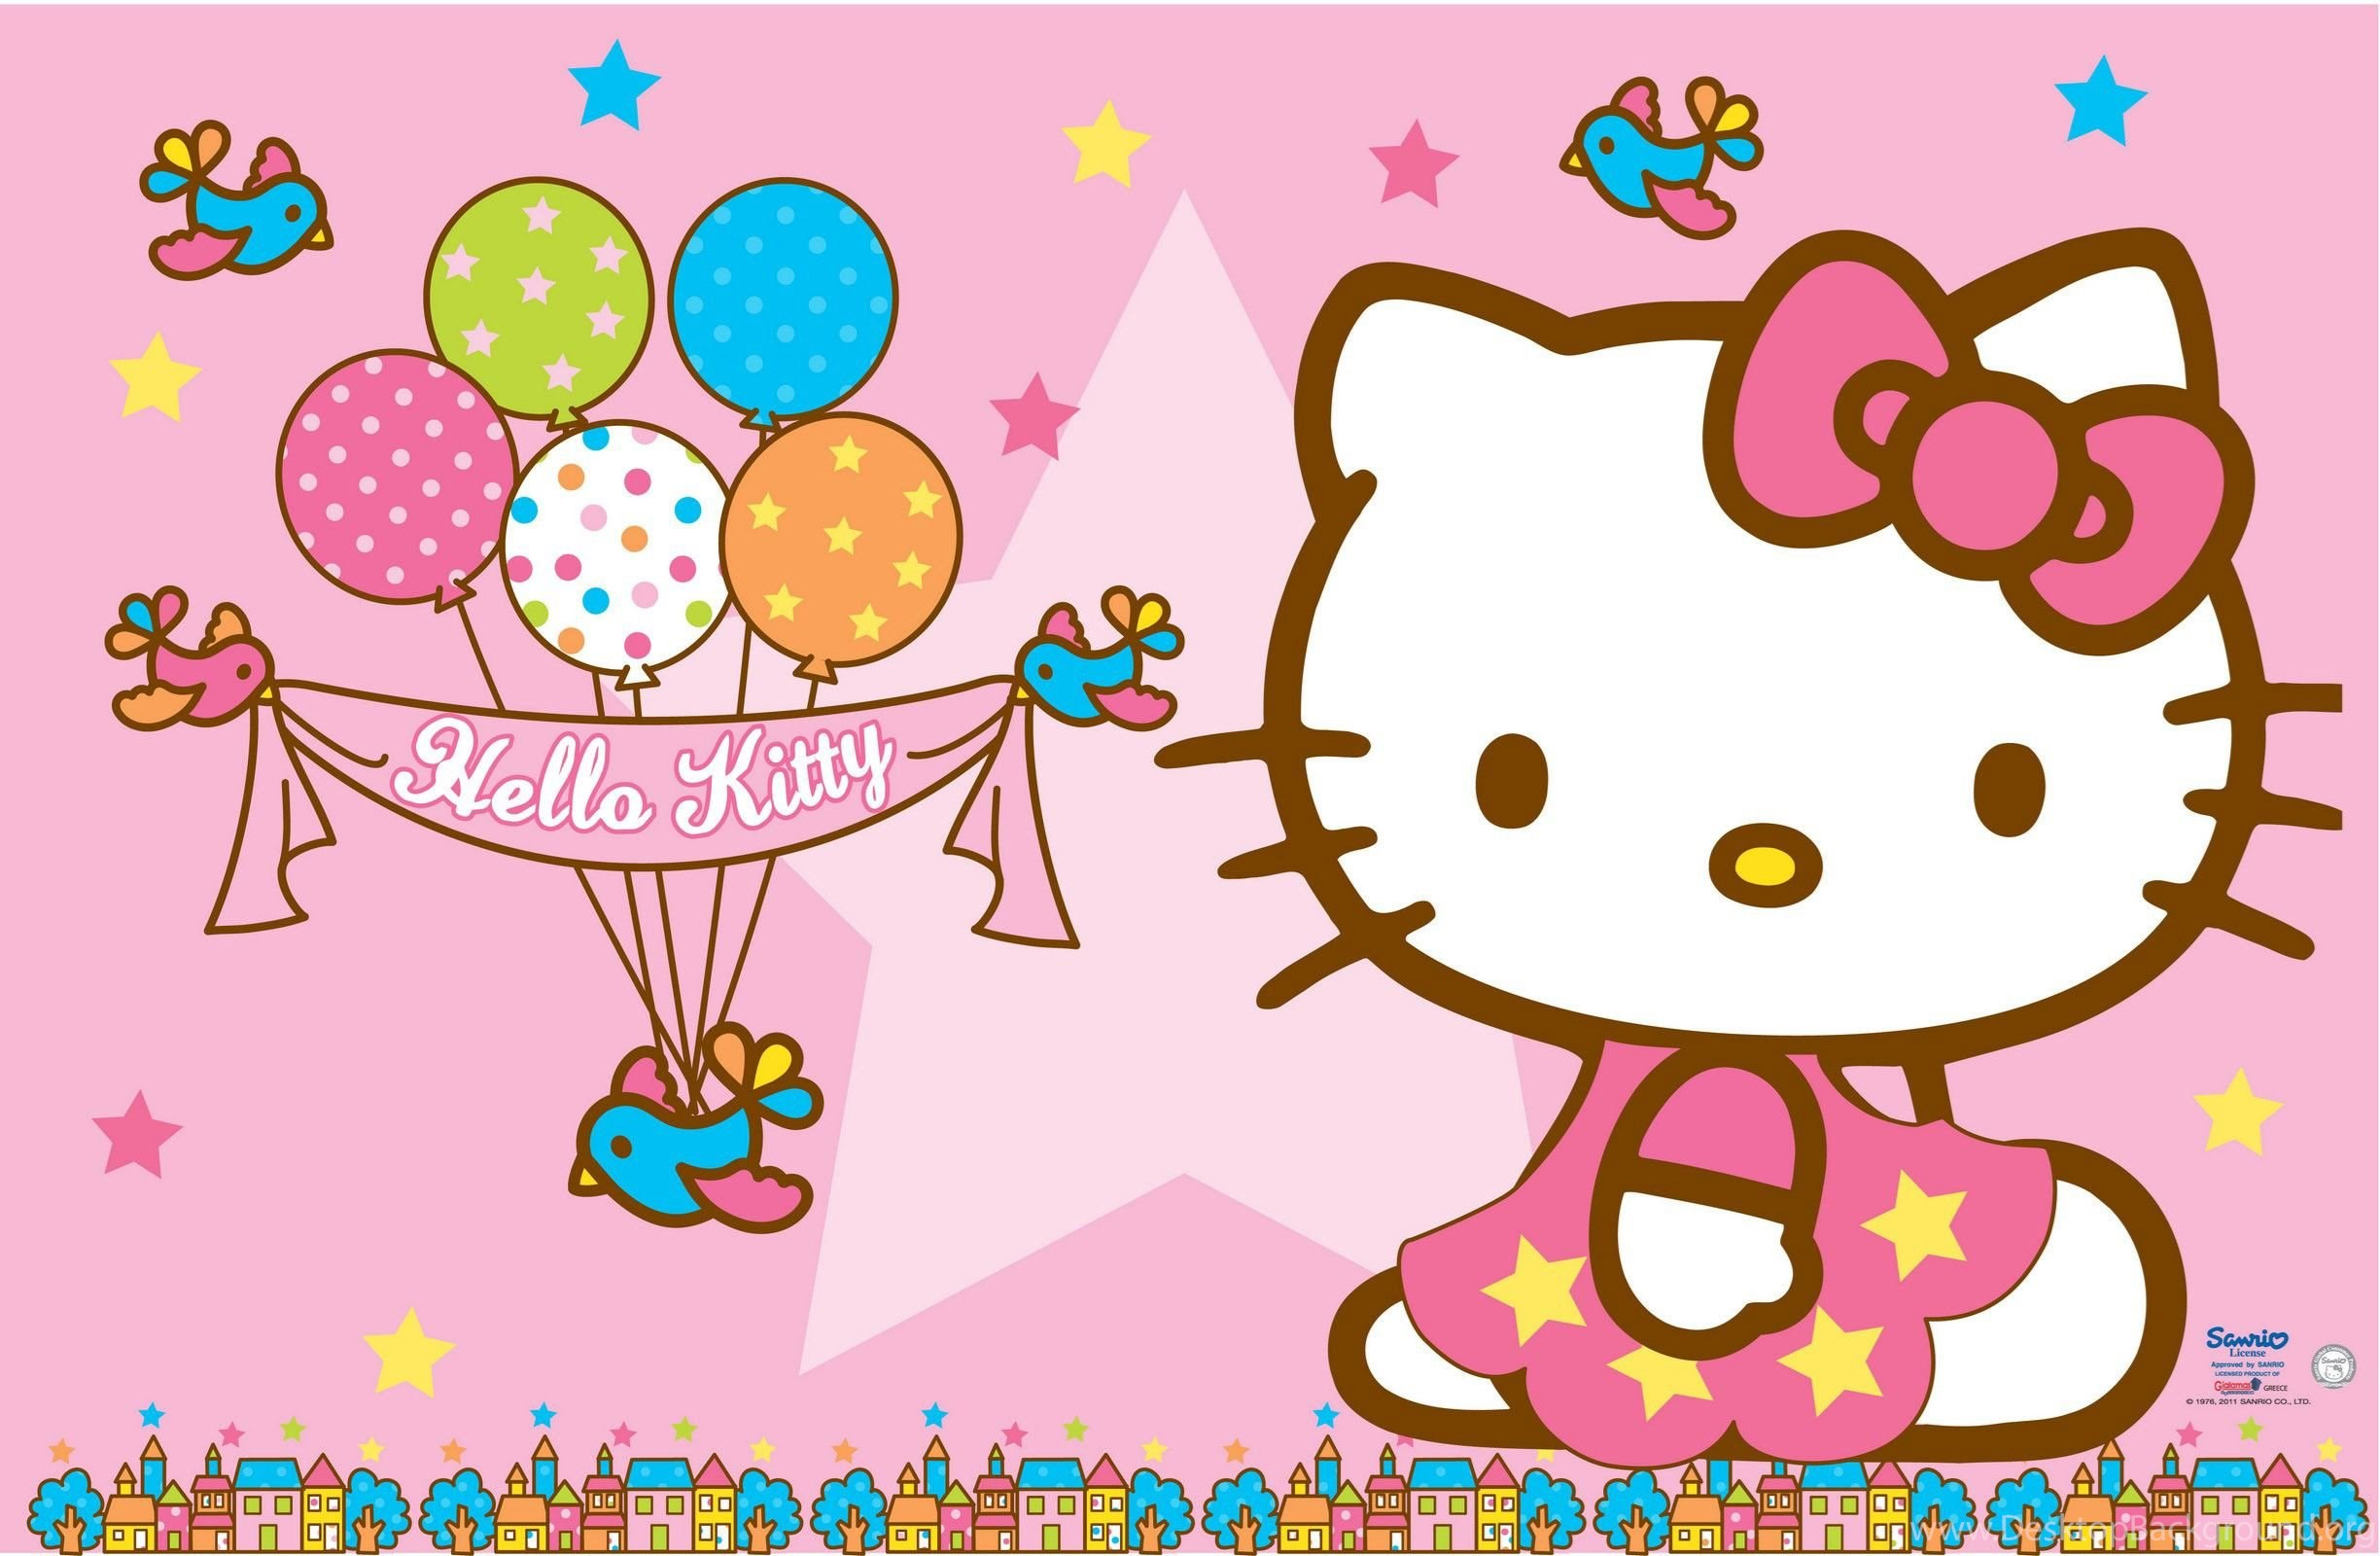 Cool Wallpaper Hello Kitty Note 2 - 374596_hello-kitty-wallpapers-pink-backgrounds-and-balloons-for-birthday_2448x1600_h  Graphic_933017.jpg